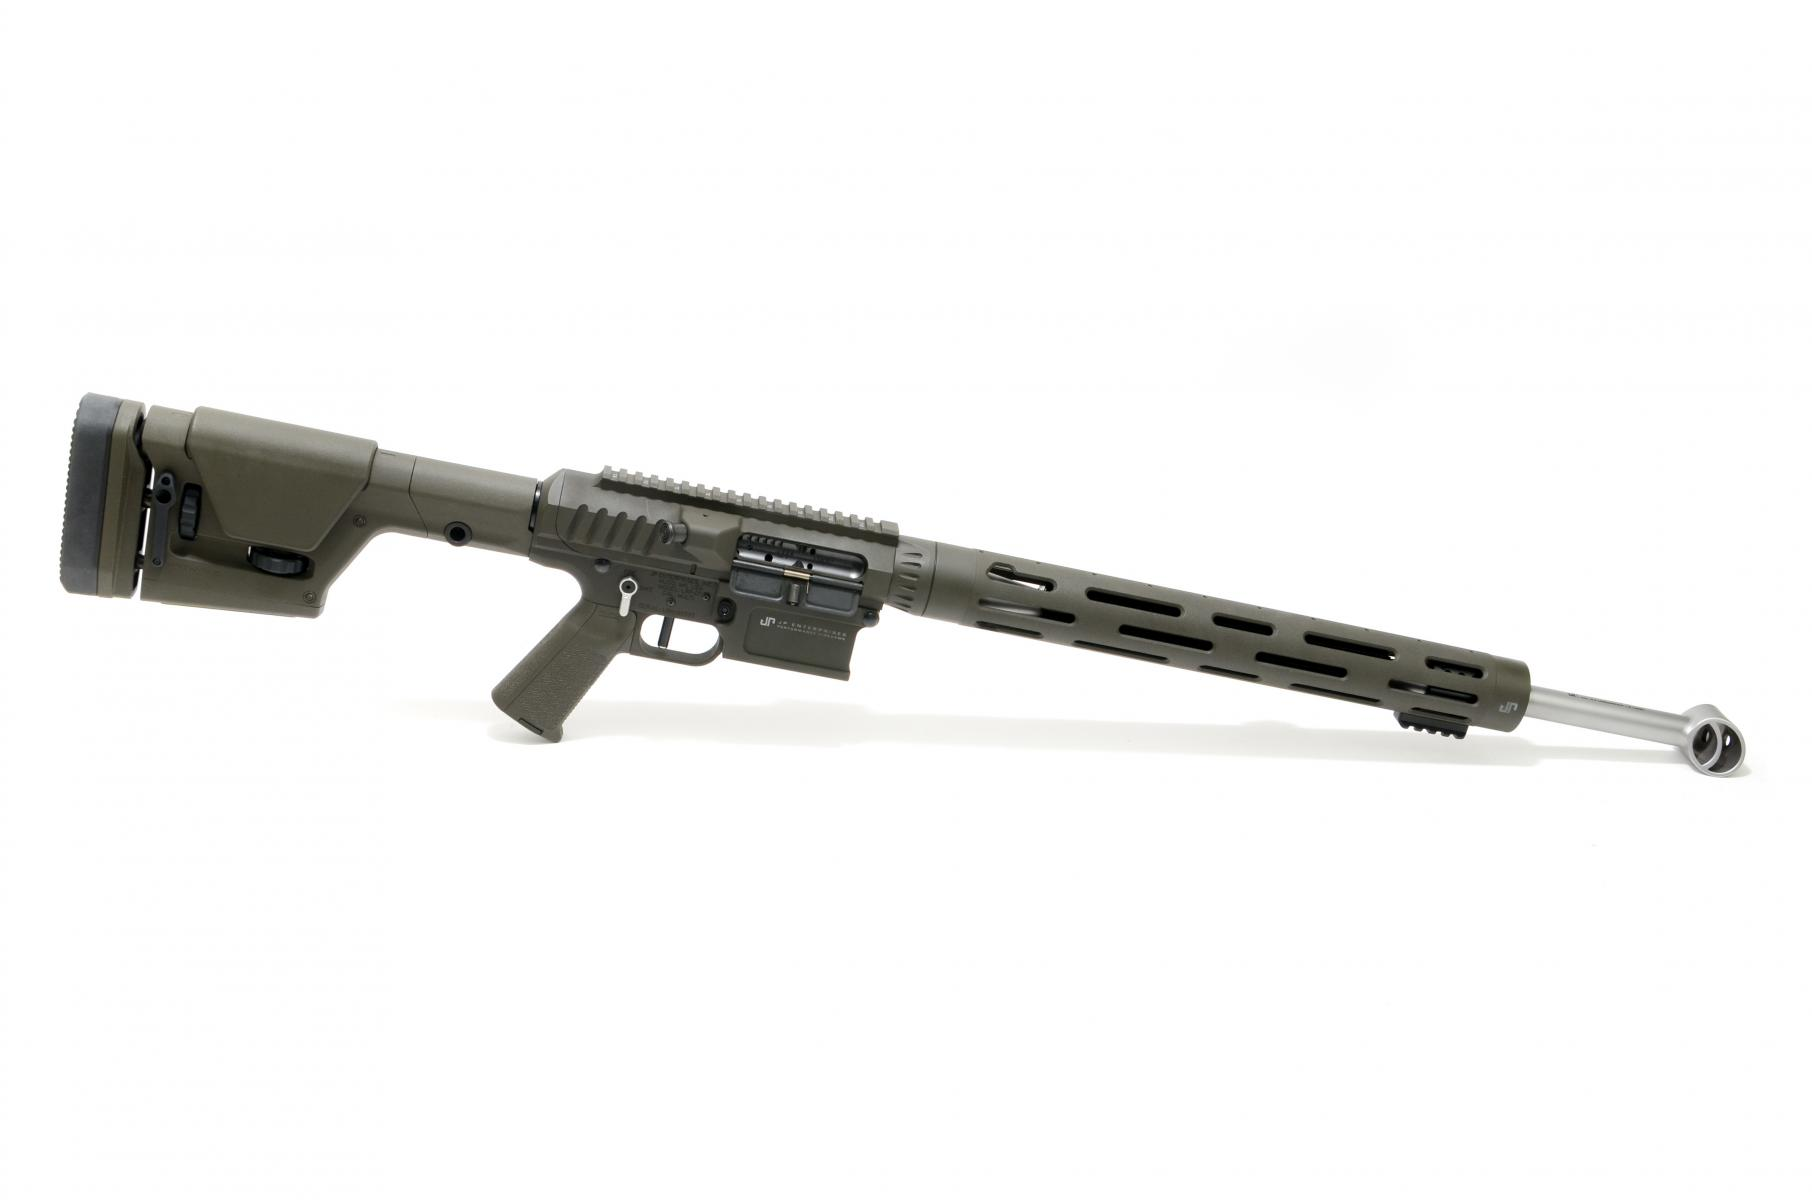 "JP LRP-07 |6.5 Creedmoor 22"" 1:8 Twist Medium Contour Matte Bead Blast Stainless Barrel, Billet Upper/Lower w/ Side Charge System, OD Green Cerakote, Black XL Thermal Dissipator, SCS, Magpul PRS Gen3 Stock, Low Mass BCG, 10-Round Magazine"